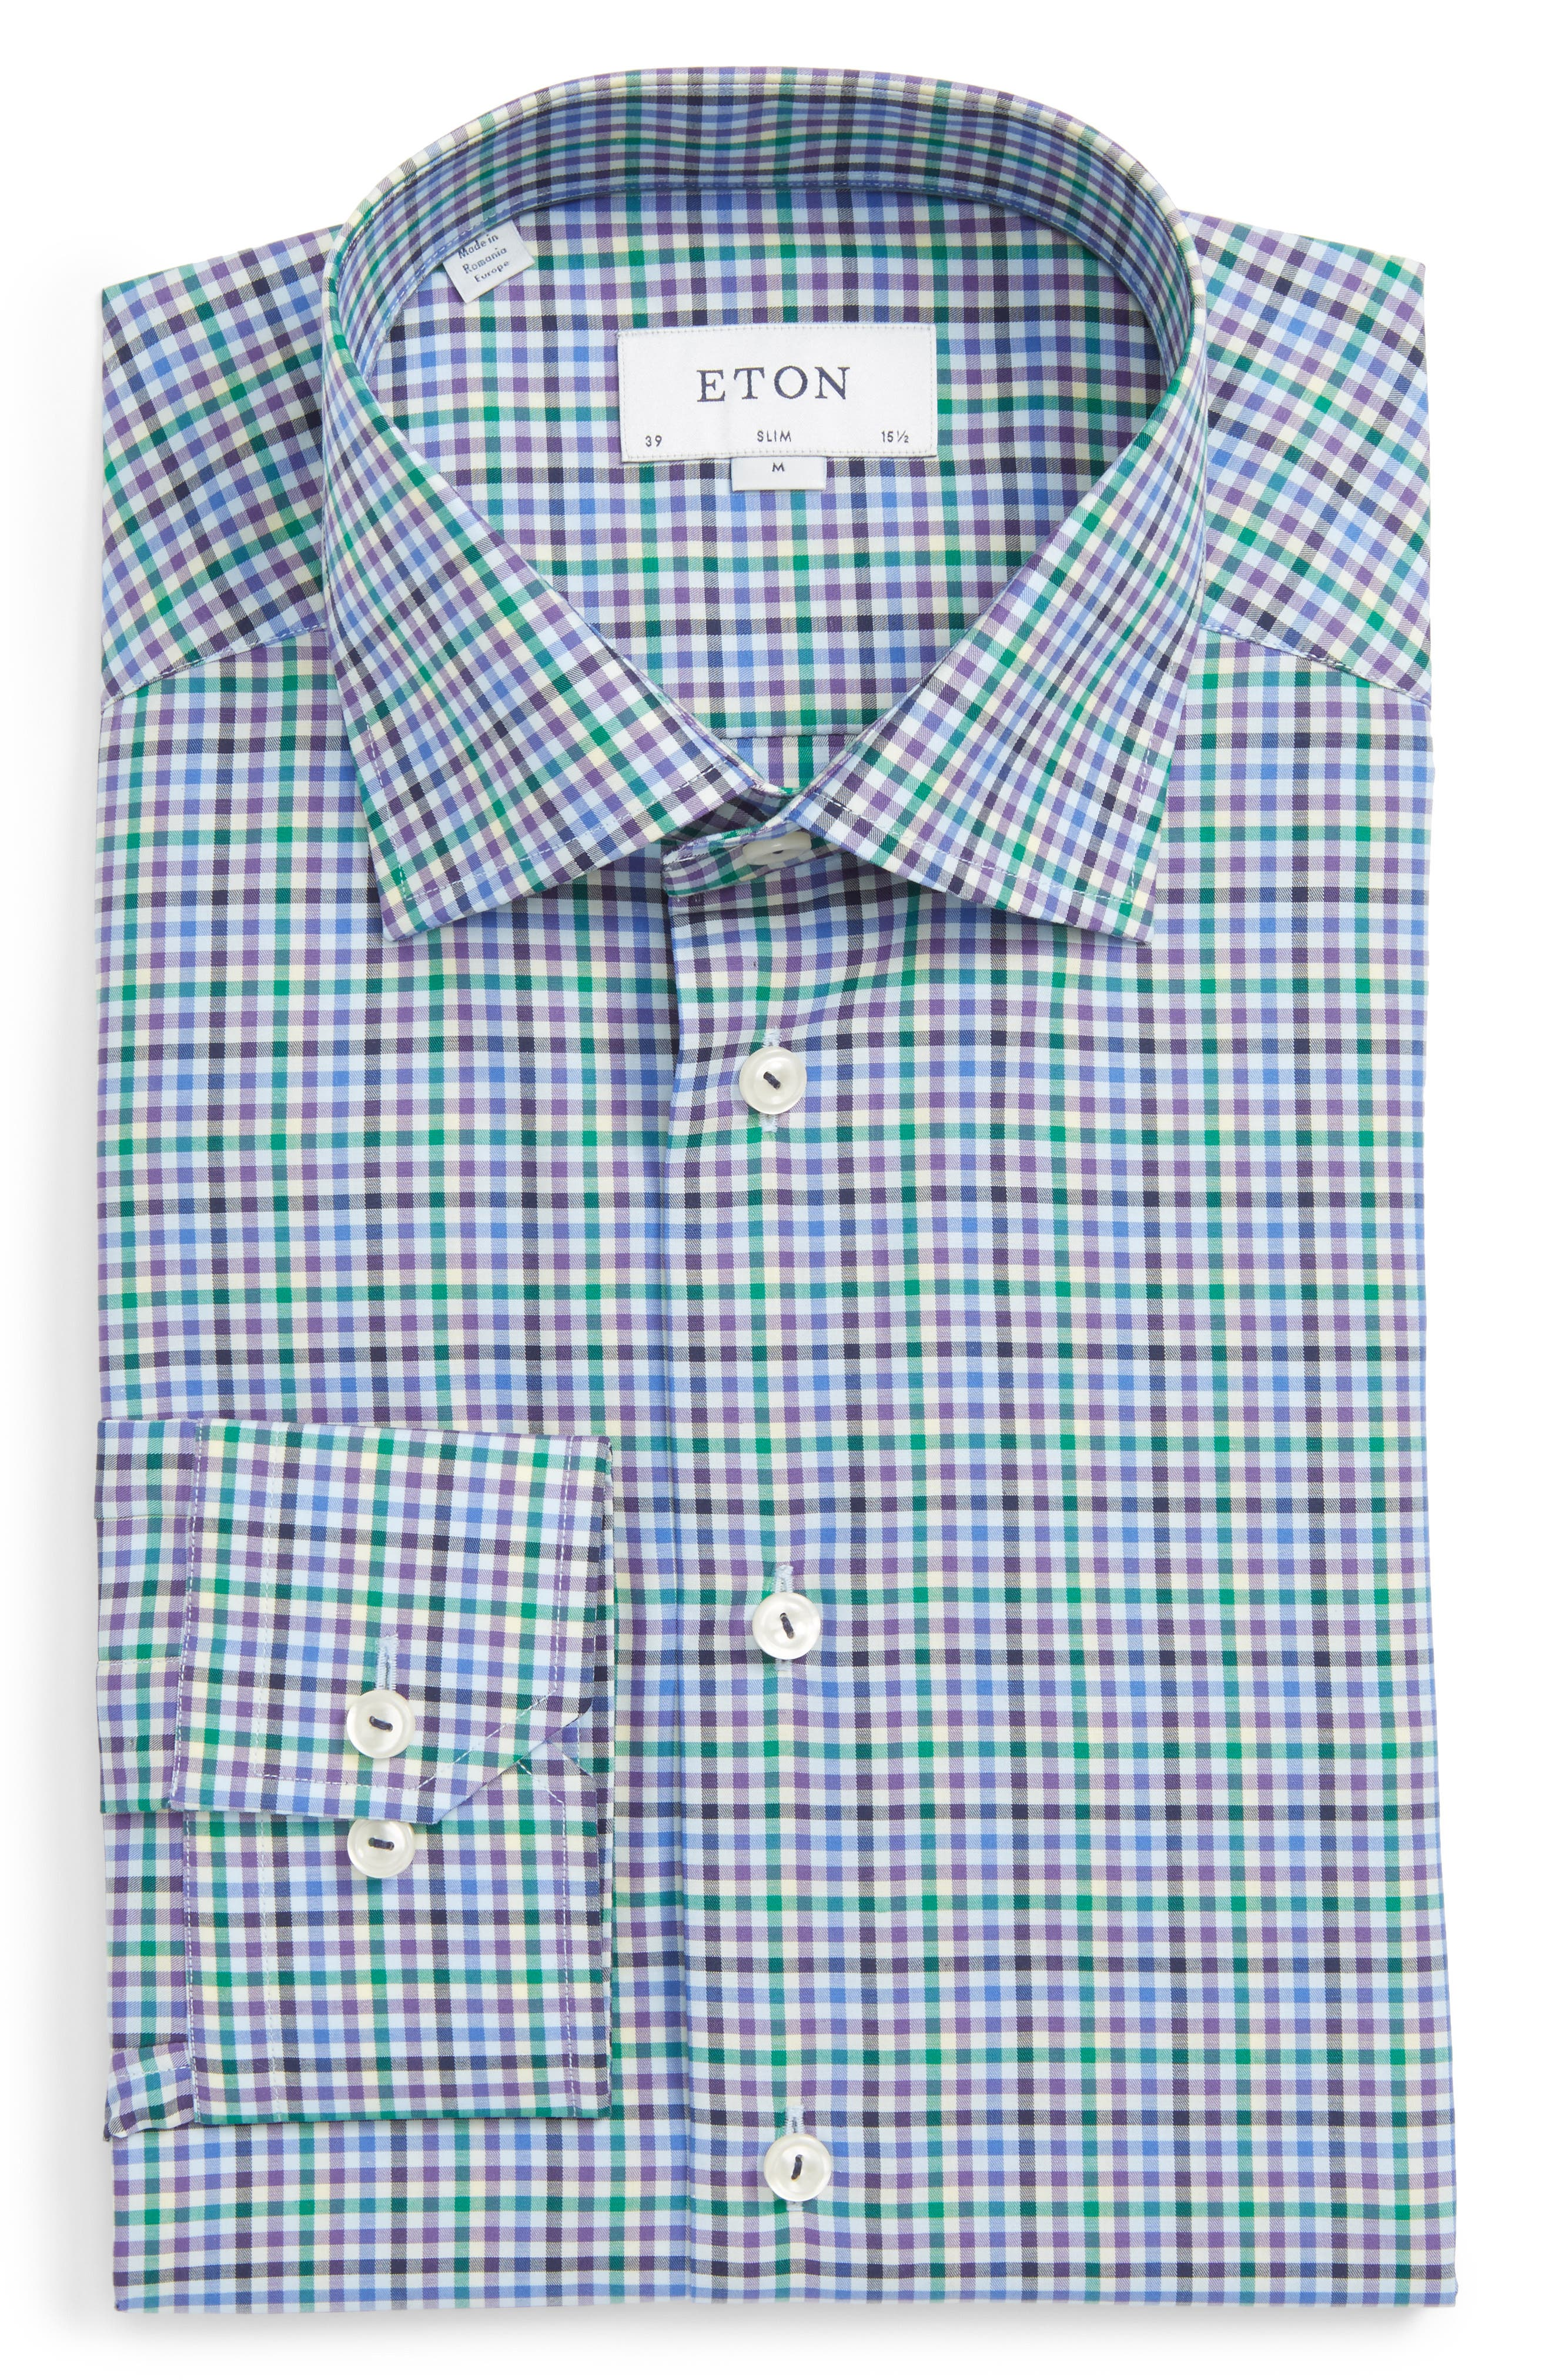 Slim Fit Check Dress Shirt,                         Main,                         color, Blue Multi Check